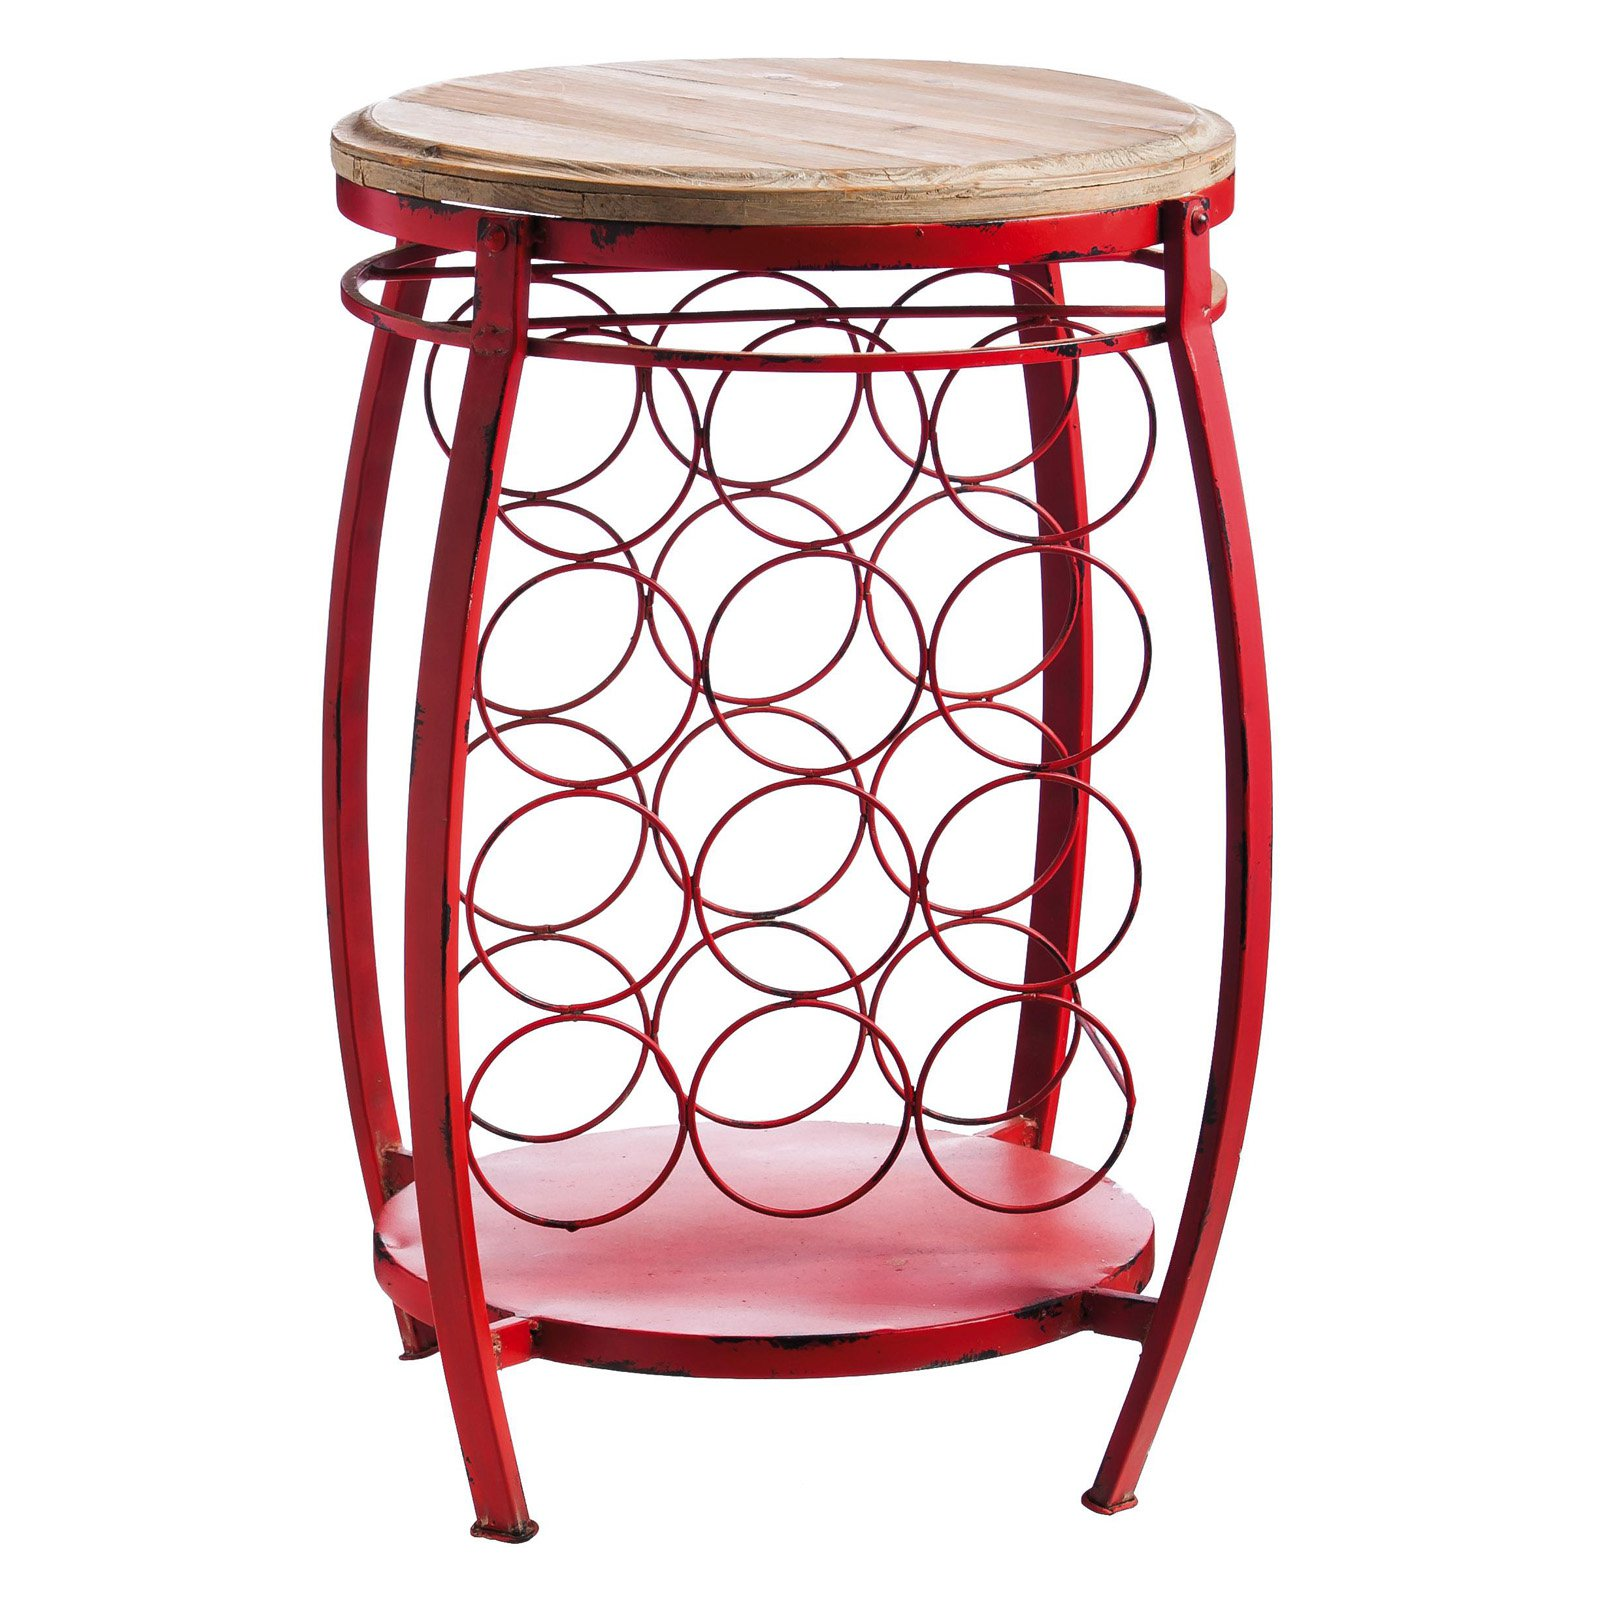 Evergreen Enterprises Wooden Wine Holder Side Table